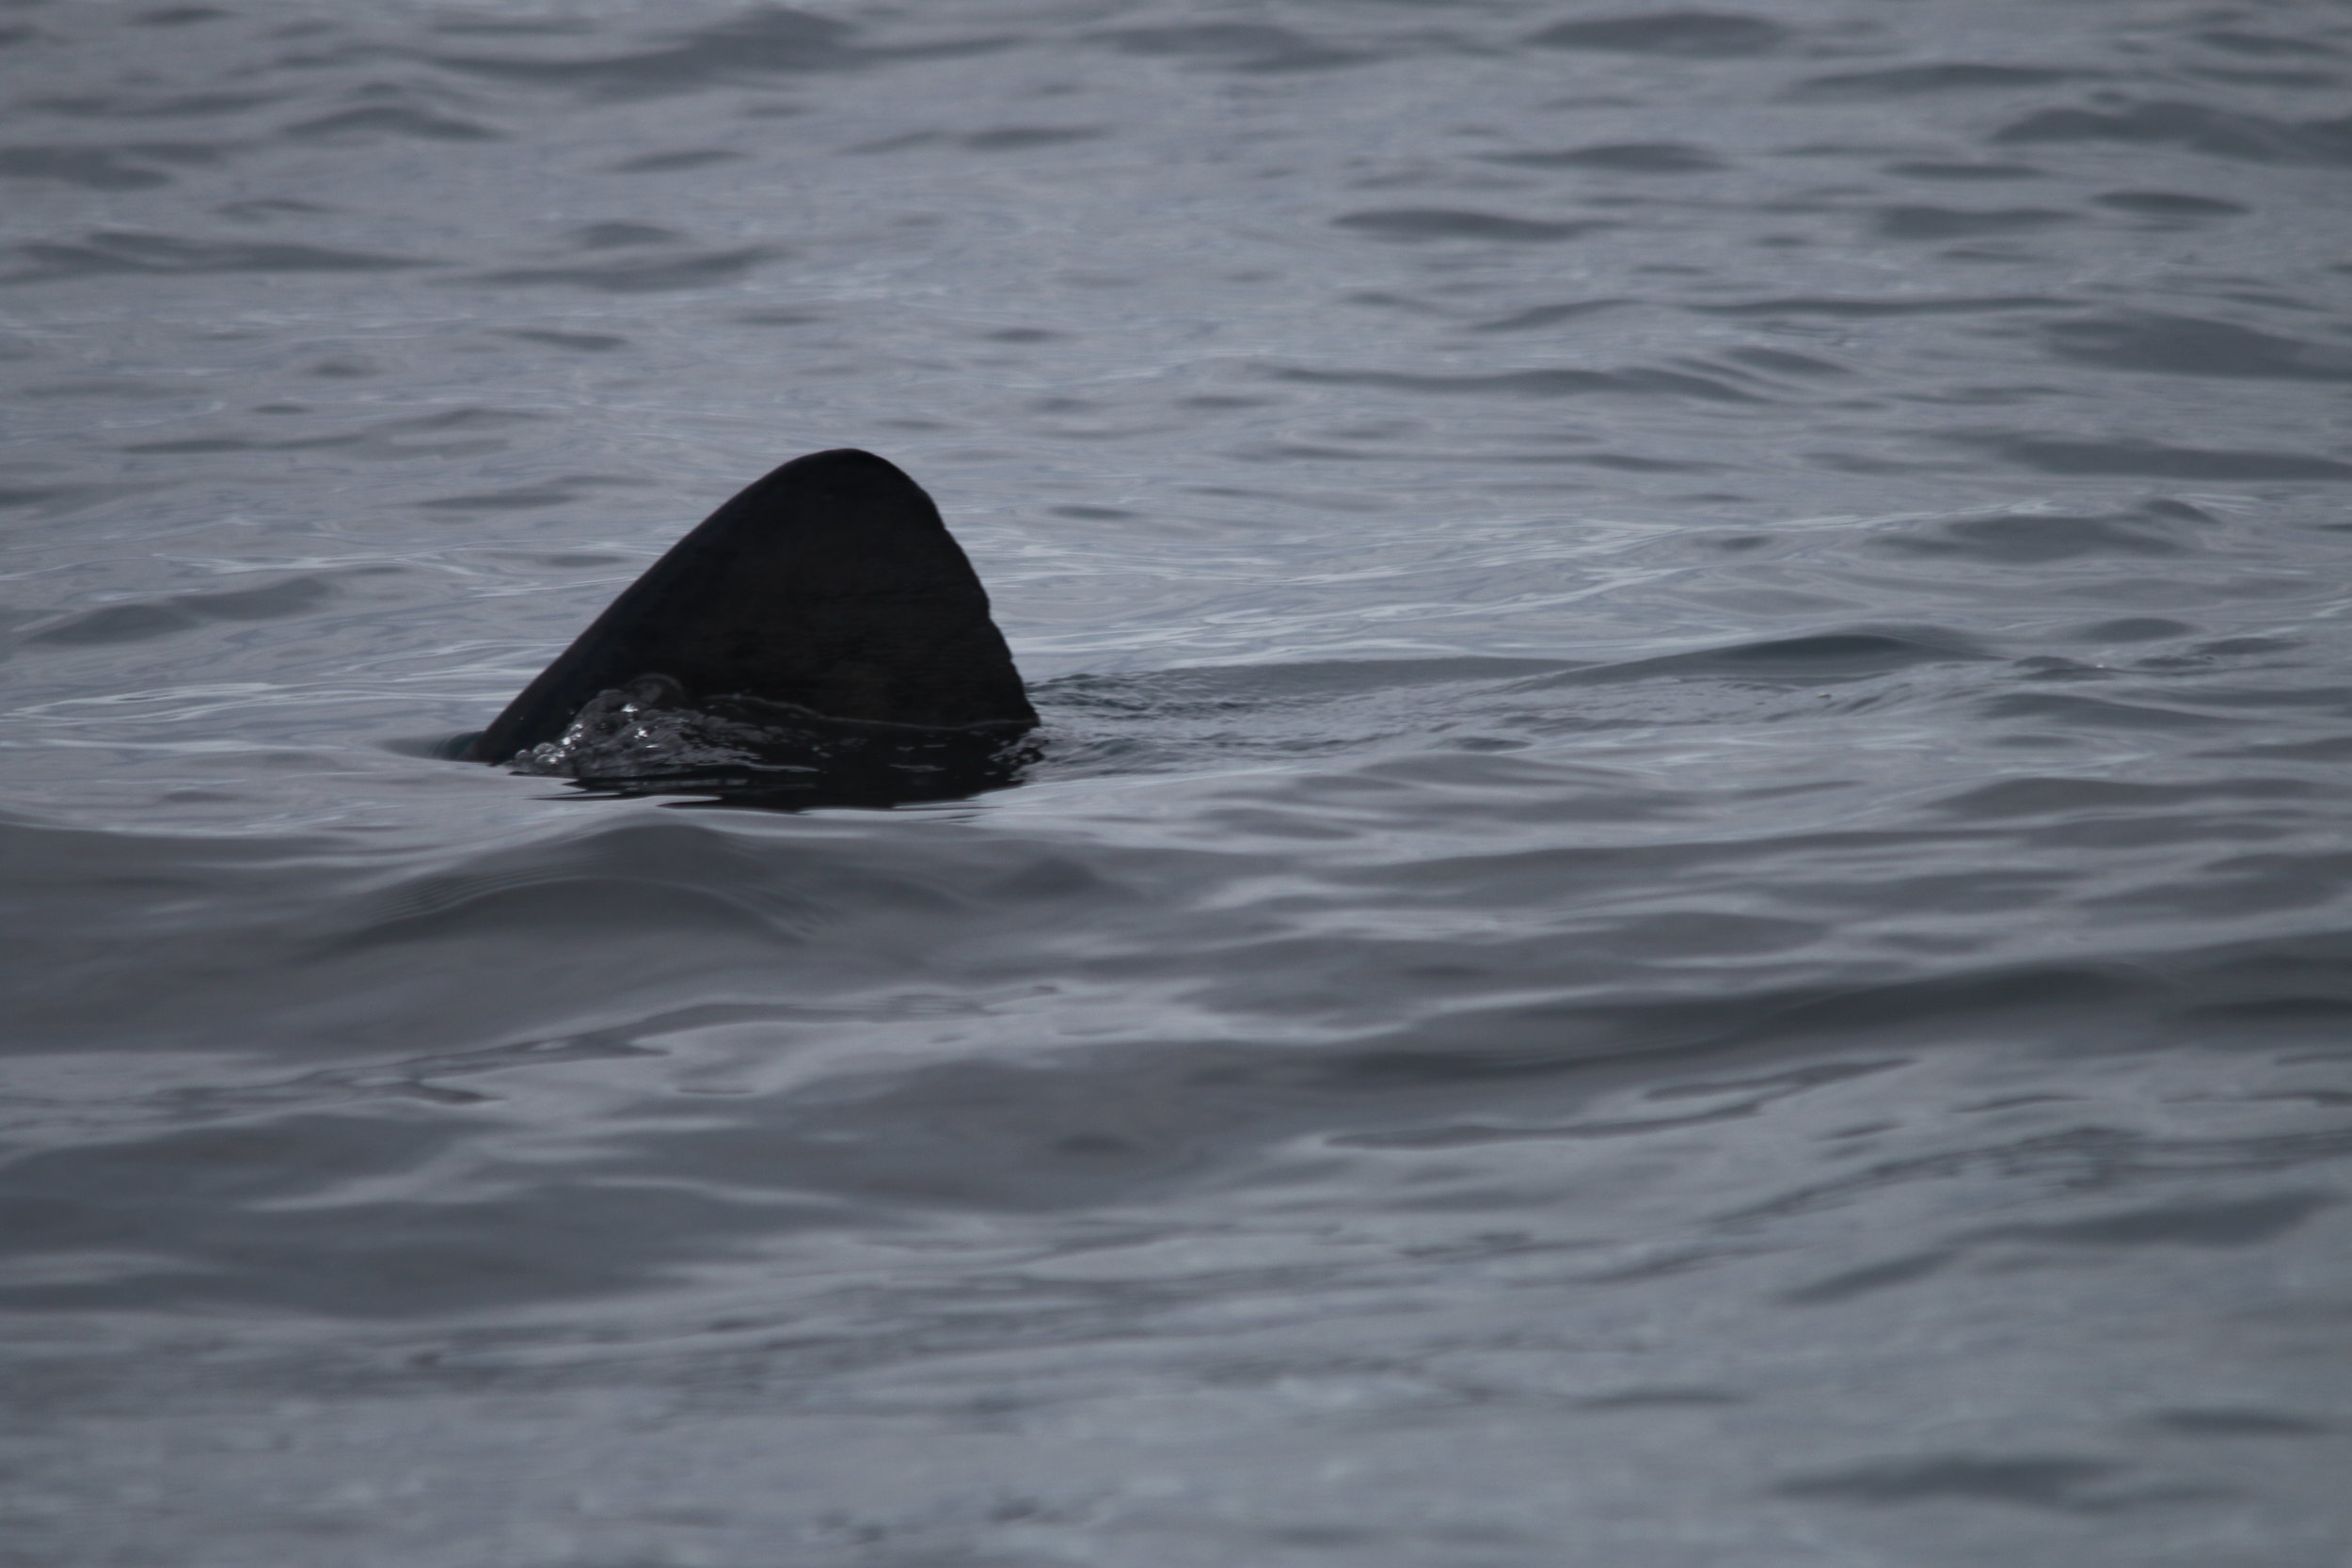 A basking shark fin breaking the surface